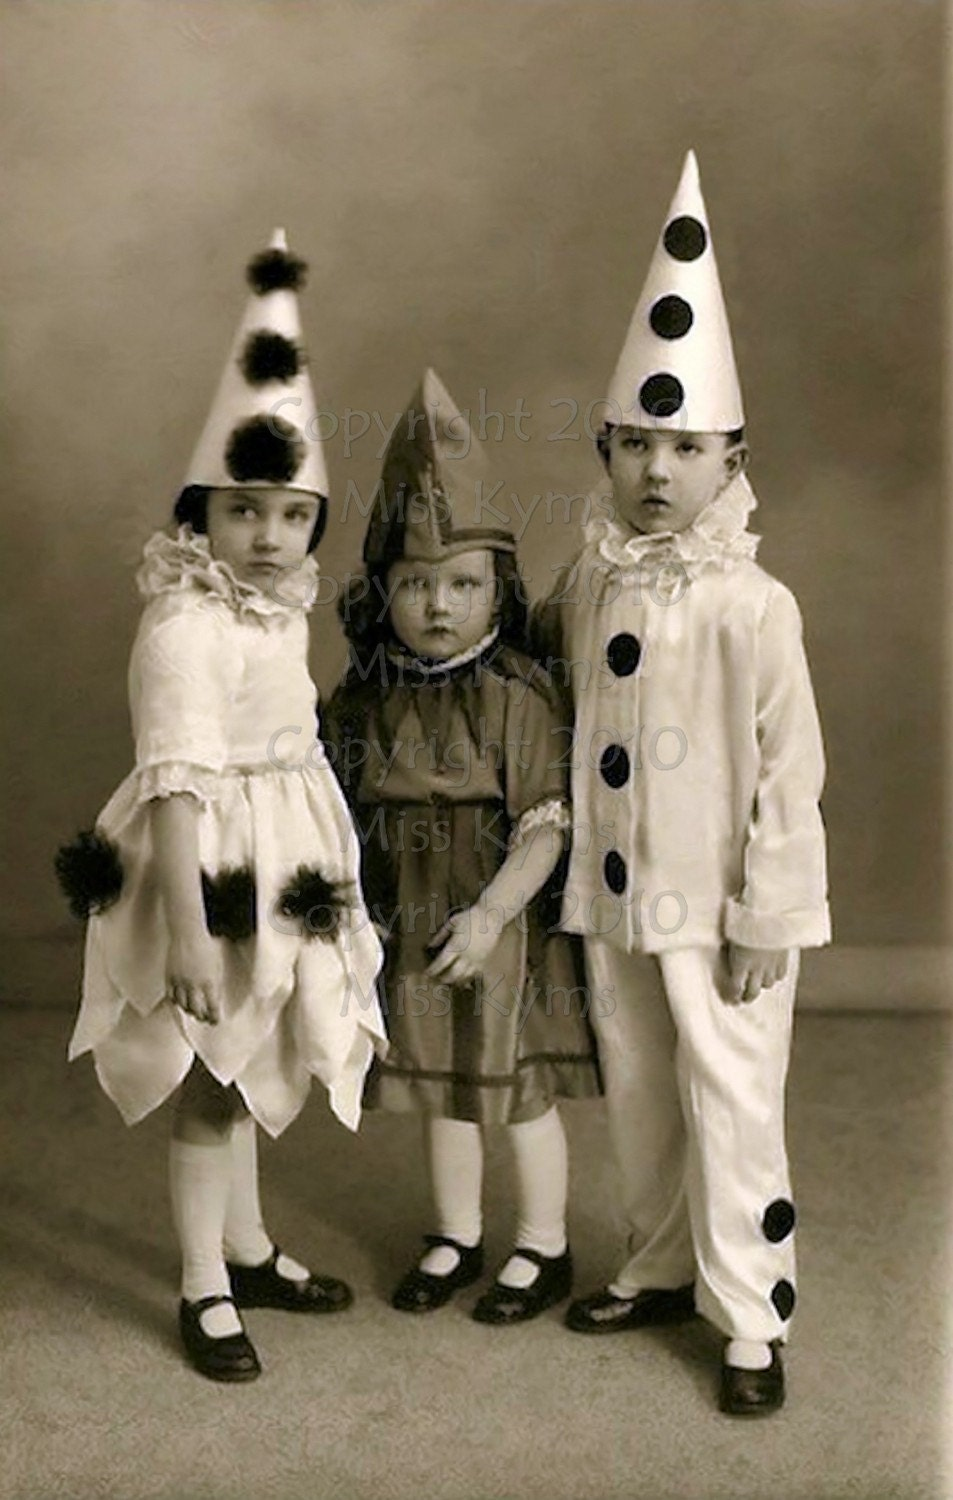 92 best images about Pierrot on Pinterest